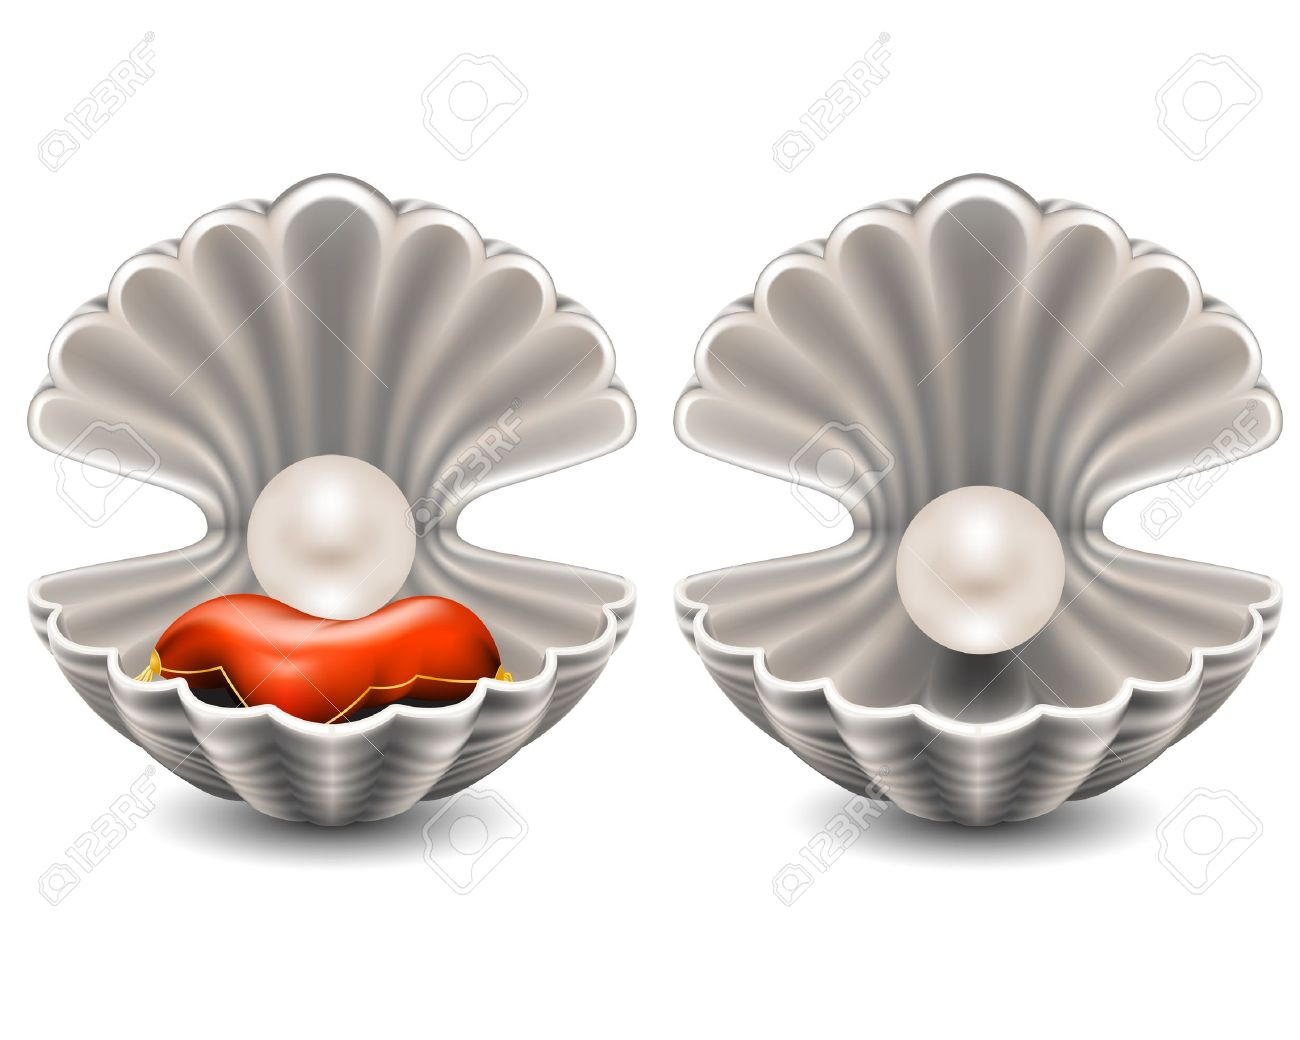 2,196 Oyster Shell Stock Vector Illustration And Royalty Free.